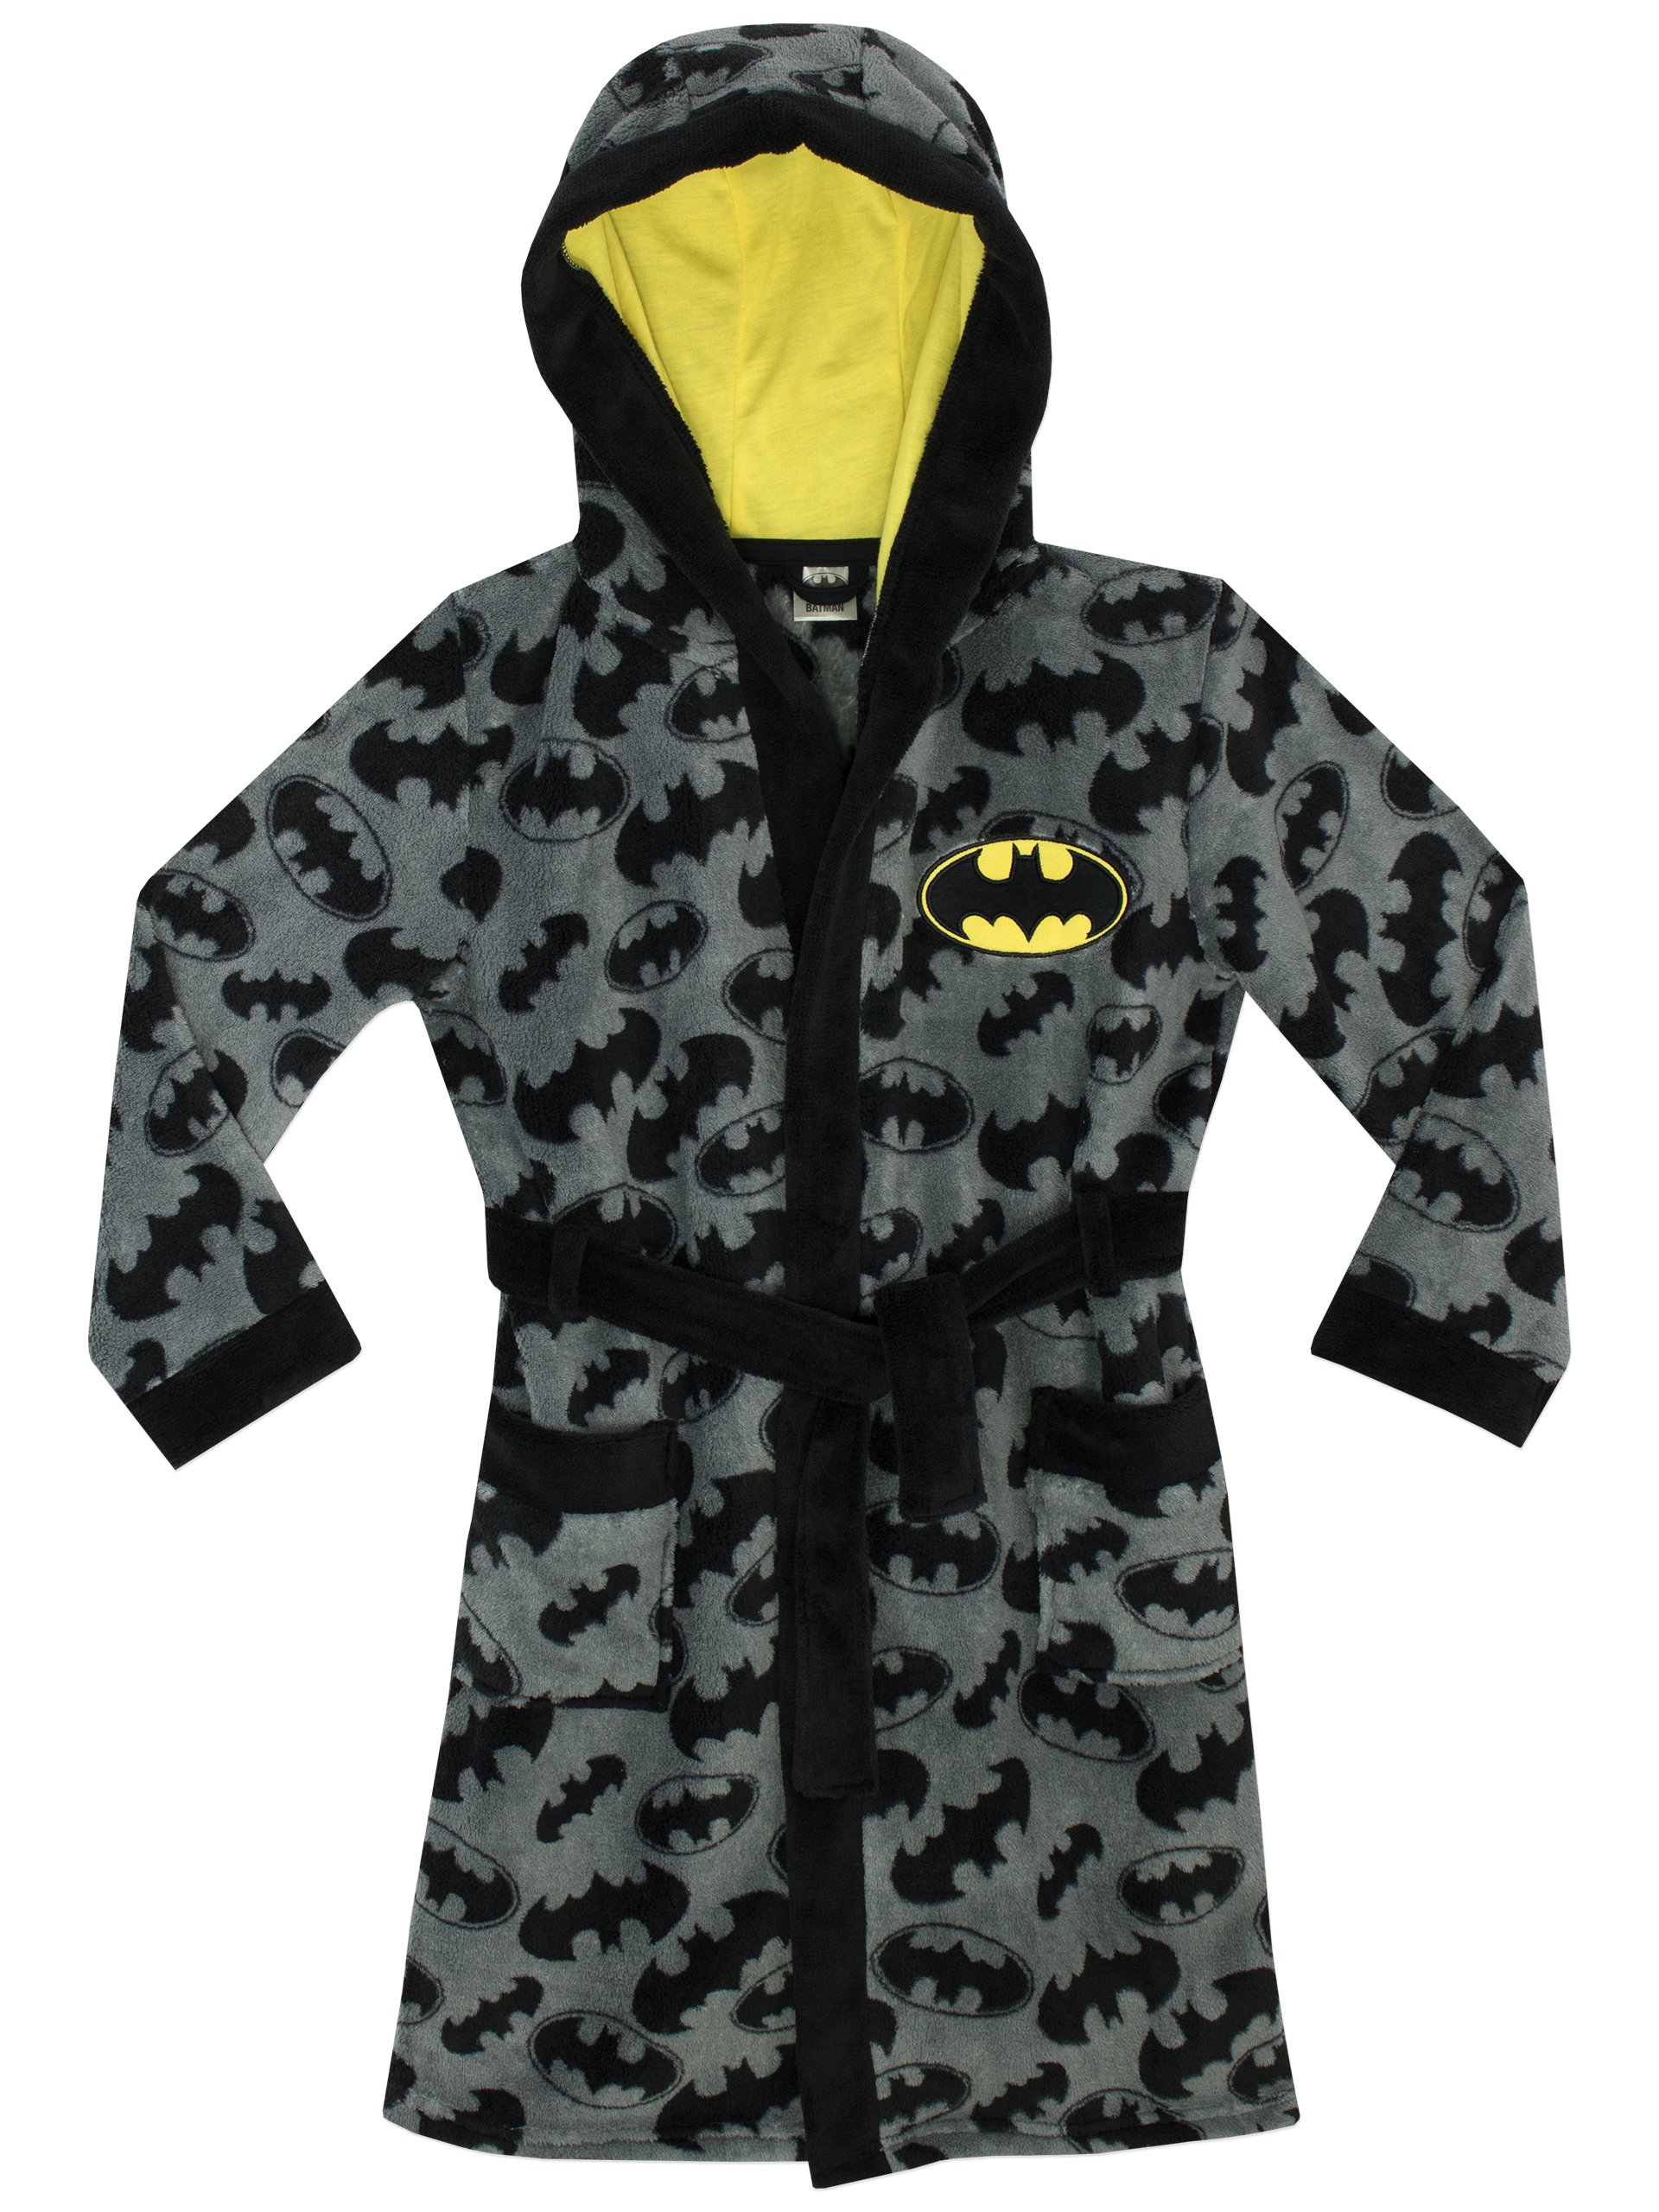 Batman - Bata para niños - Batman product image